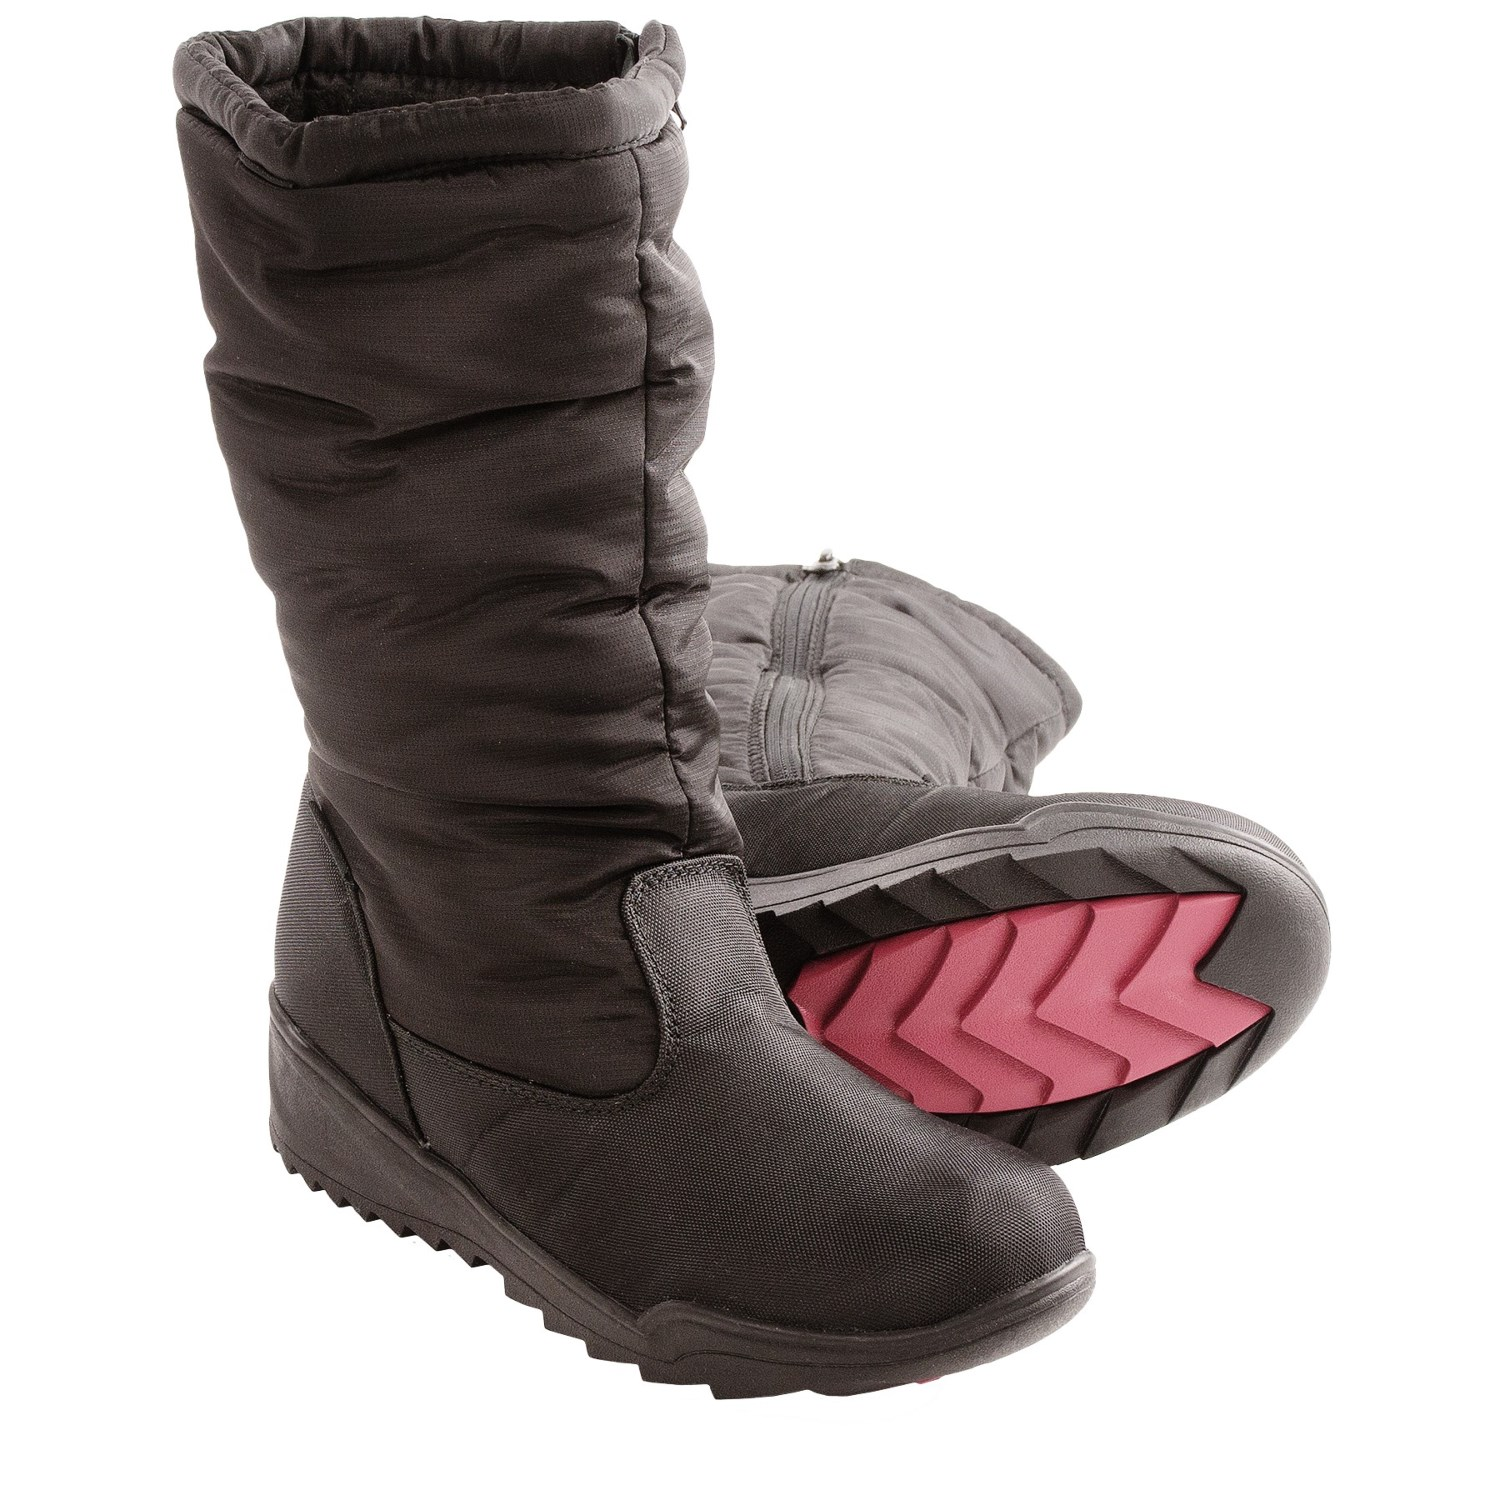 kamik lyon2 snow boots waterproof insulated for